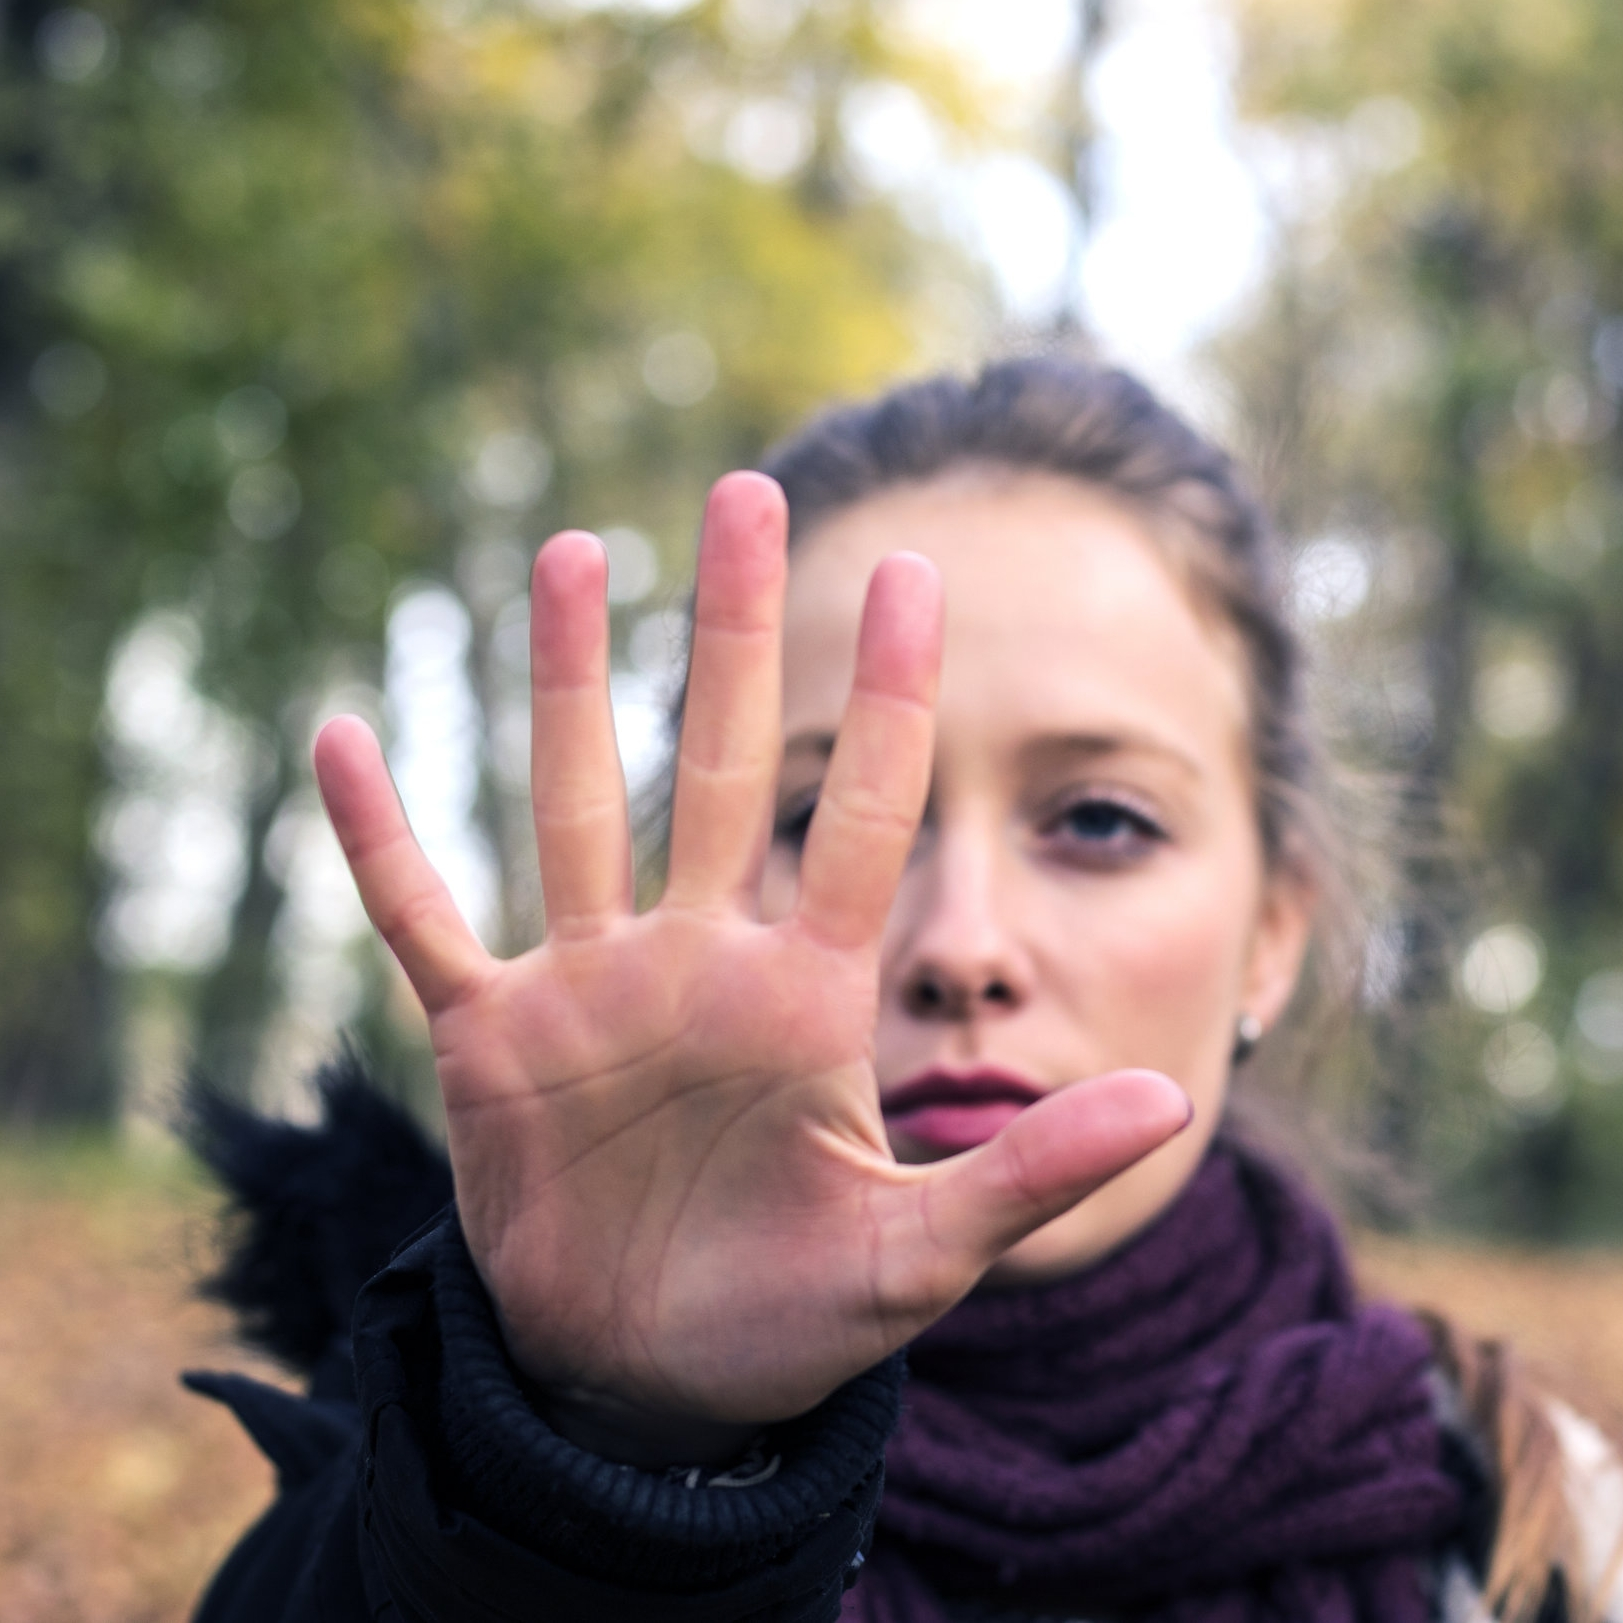 7_ShSt_DomAbuse_stock-photo-young-woman-showing-her-denial-with-no-on-her-hand-focus-on-hand-532758340.jpg